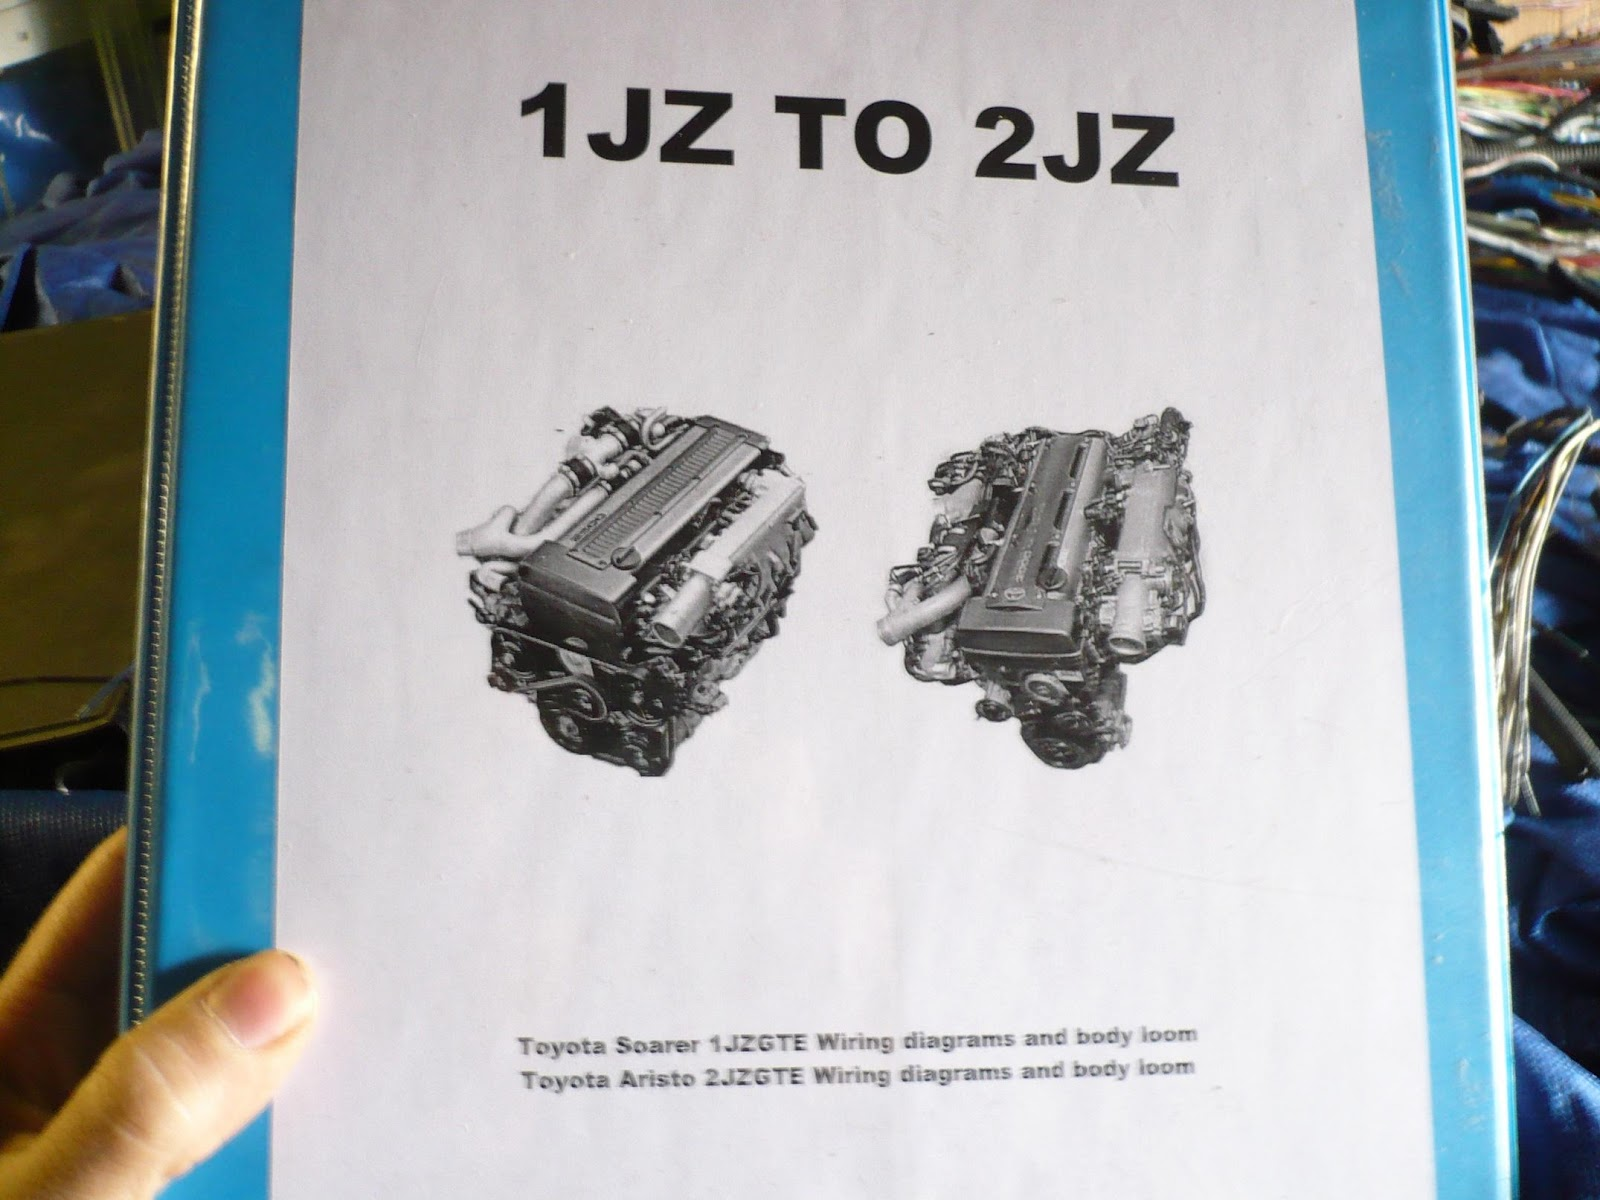 Biturbo 2jz Swapped Soarer Build Thread By Biturbo632 Builds Diy Toyota Aristo Wiring Diagram Made Myself A Swap Bible